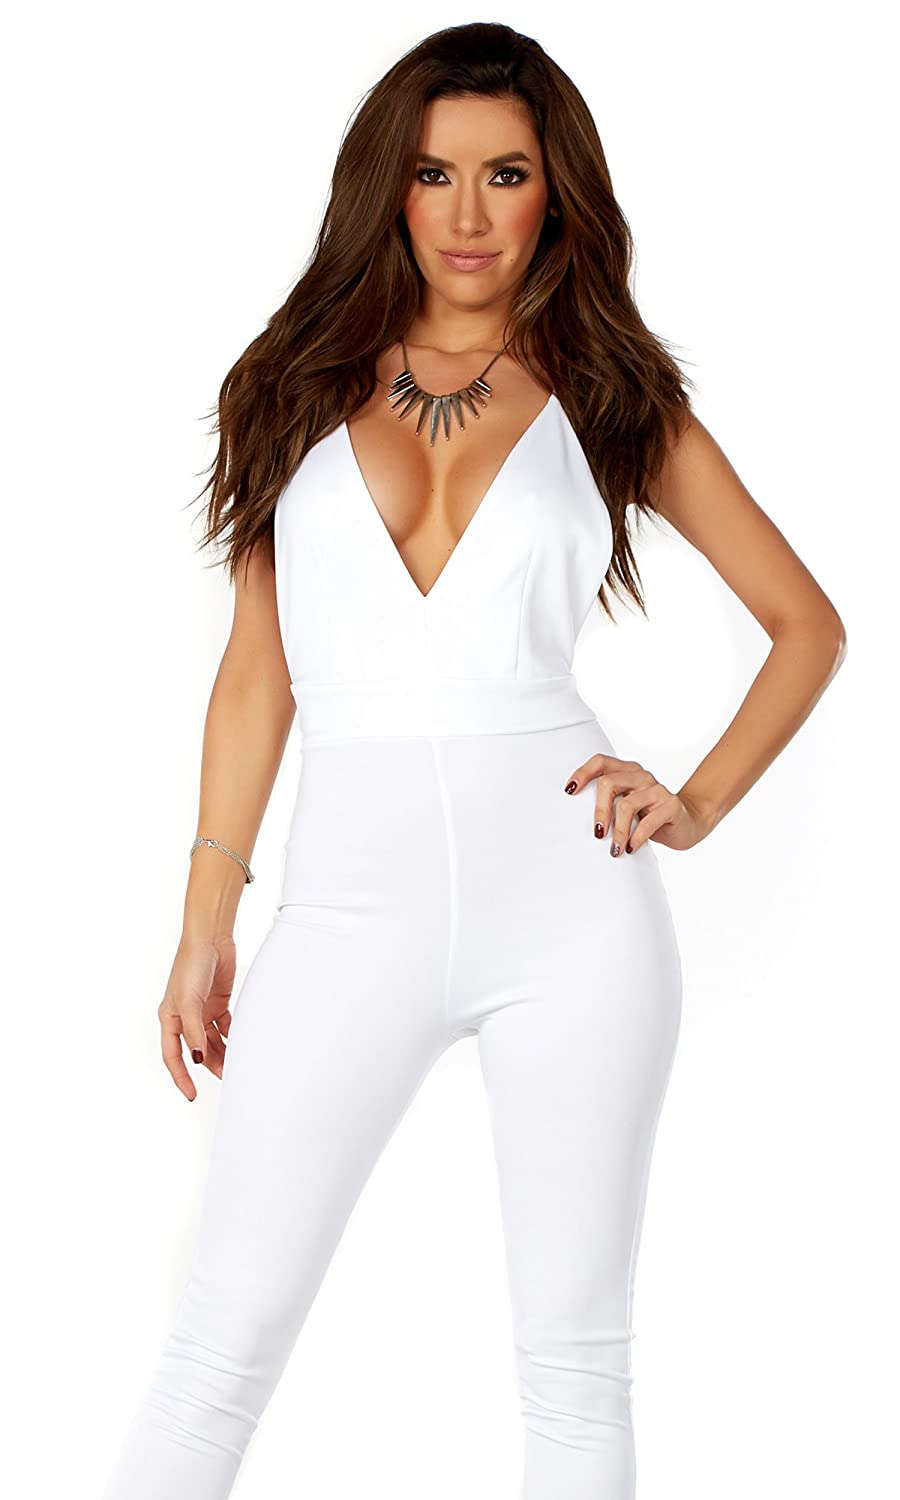 Blvd Collection by Forplay Women's Jumpsuit 885210